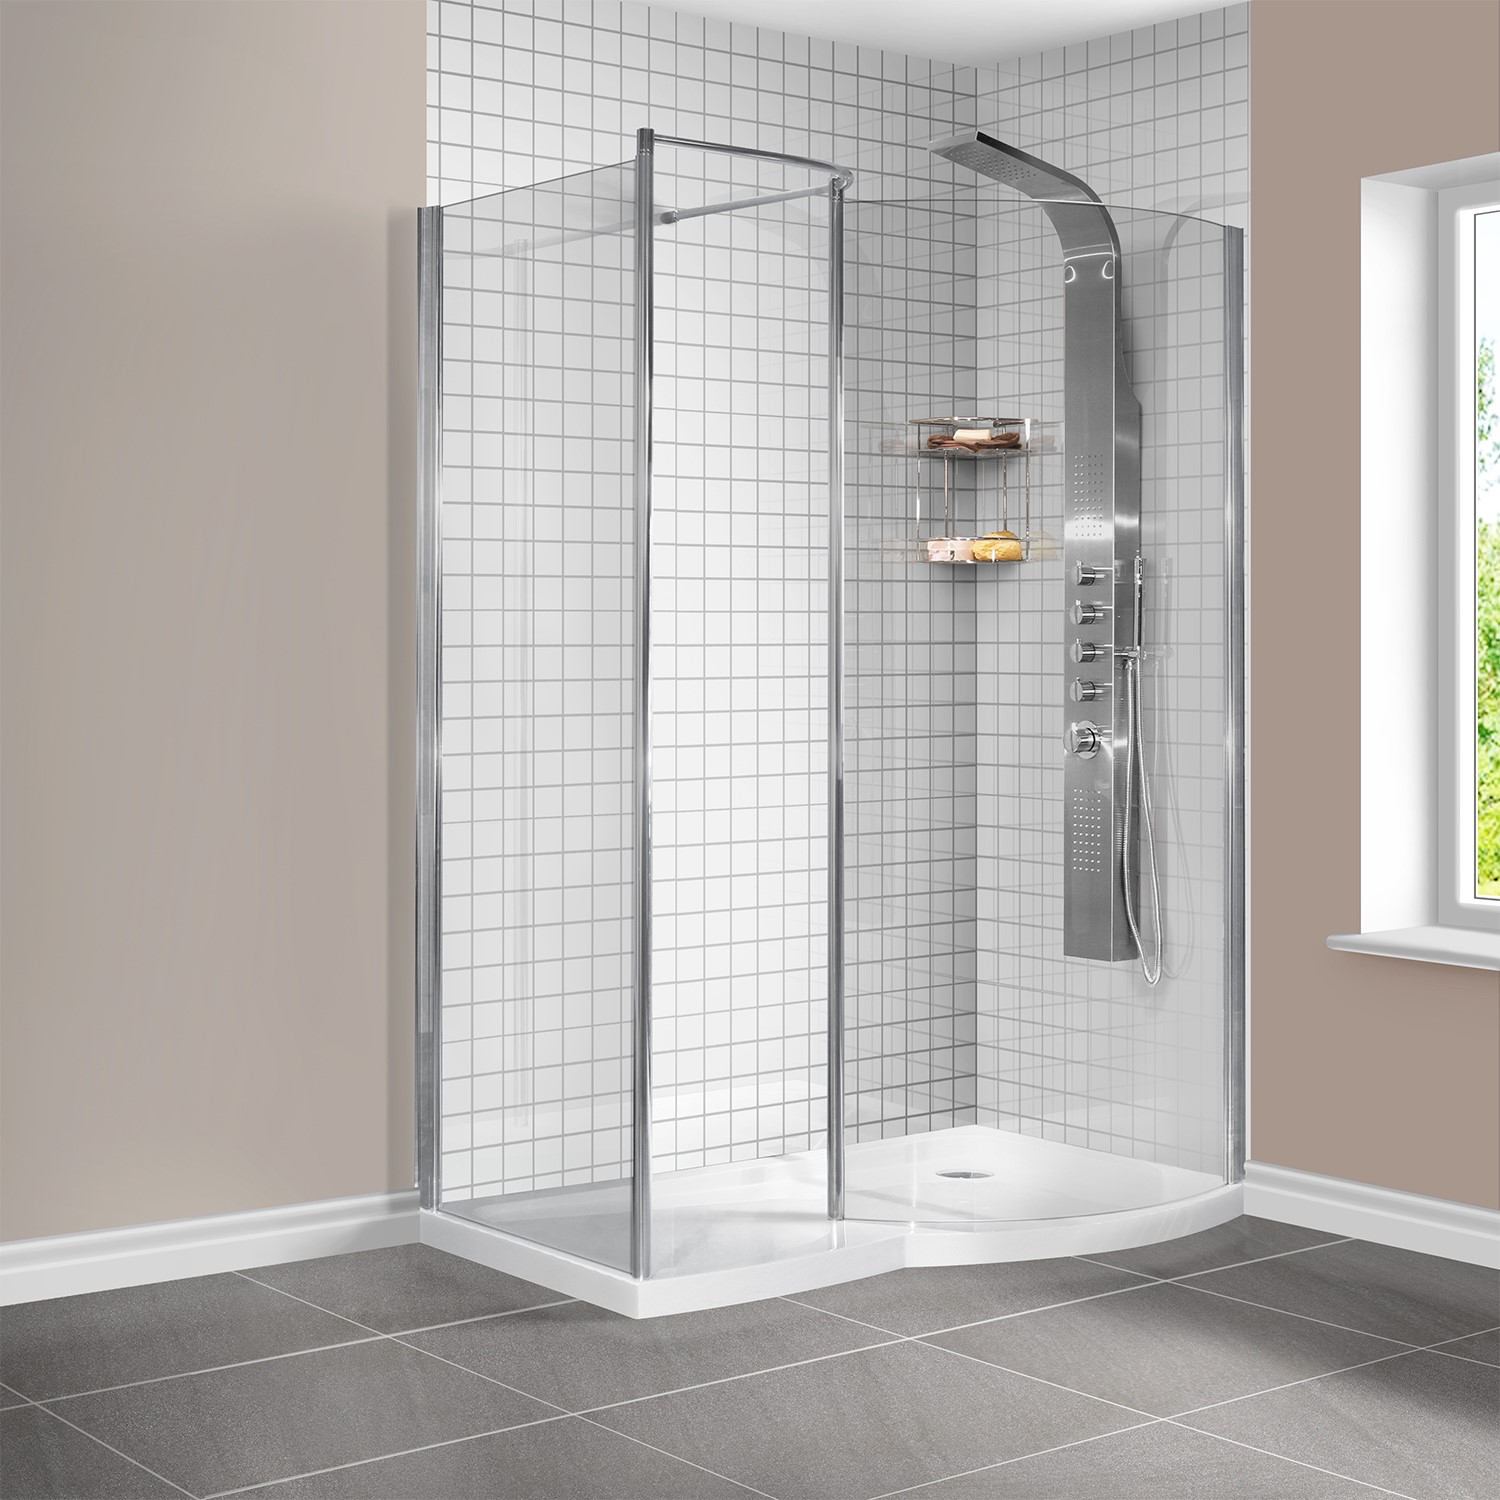 1400 X 900mm Curved Right Hand Walk In Shower Enclosure With Shower Tray